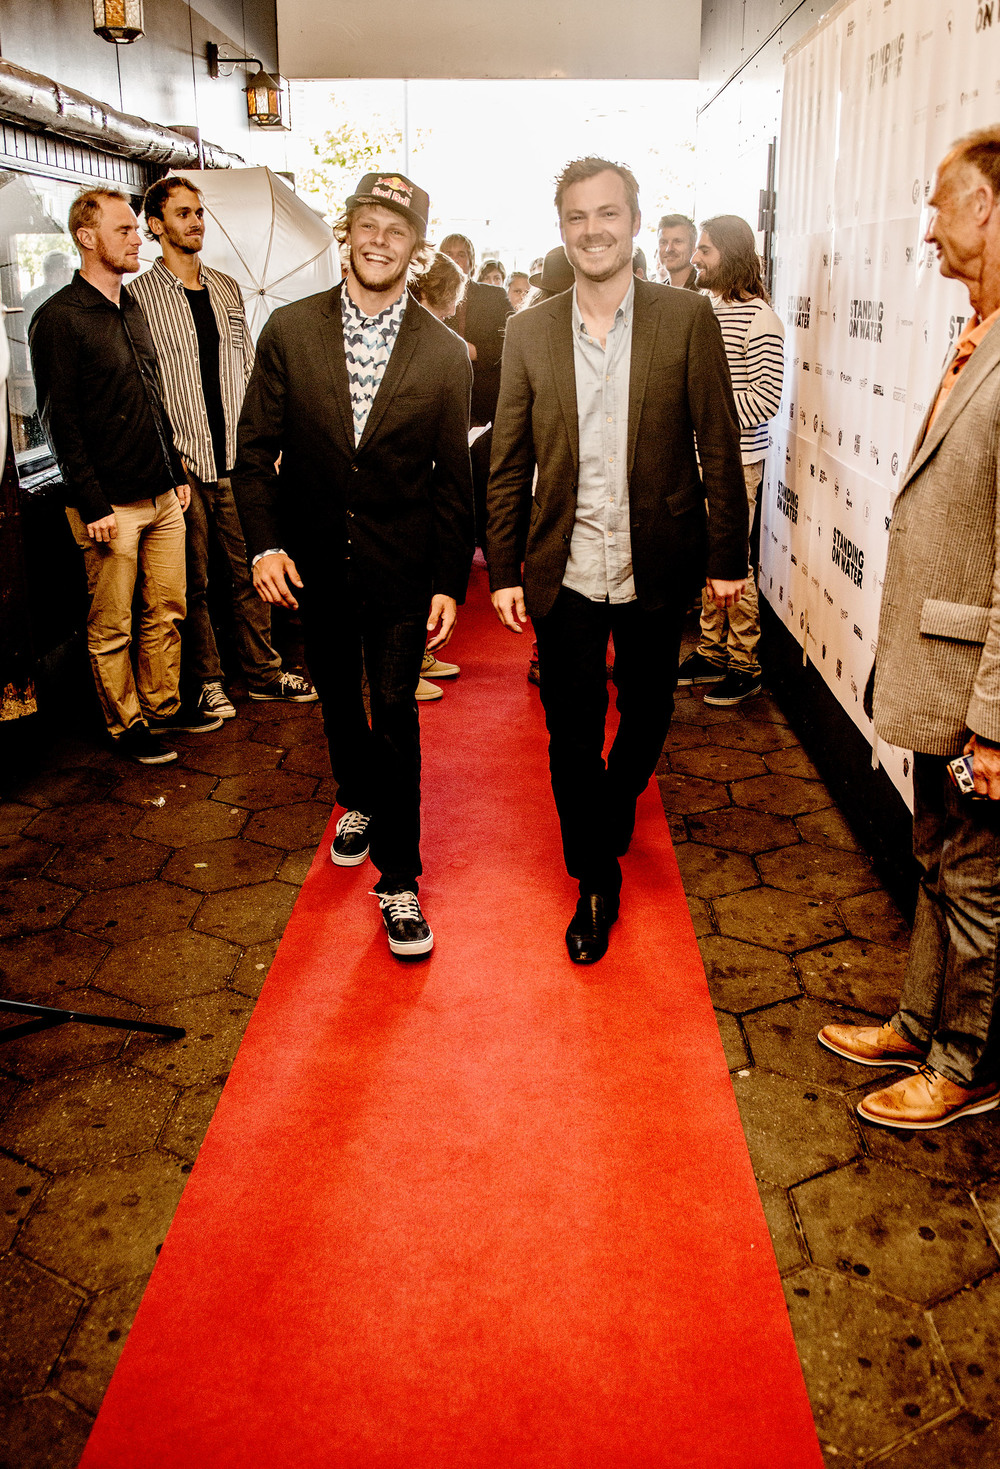 Peter Alsted and Casper Steinfath on the red carpet